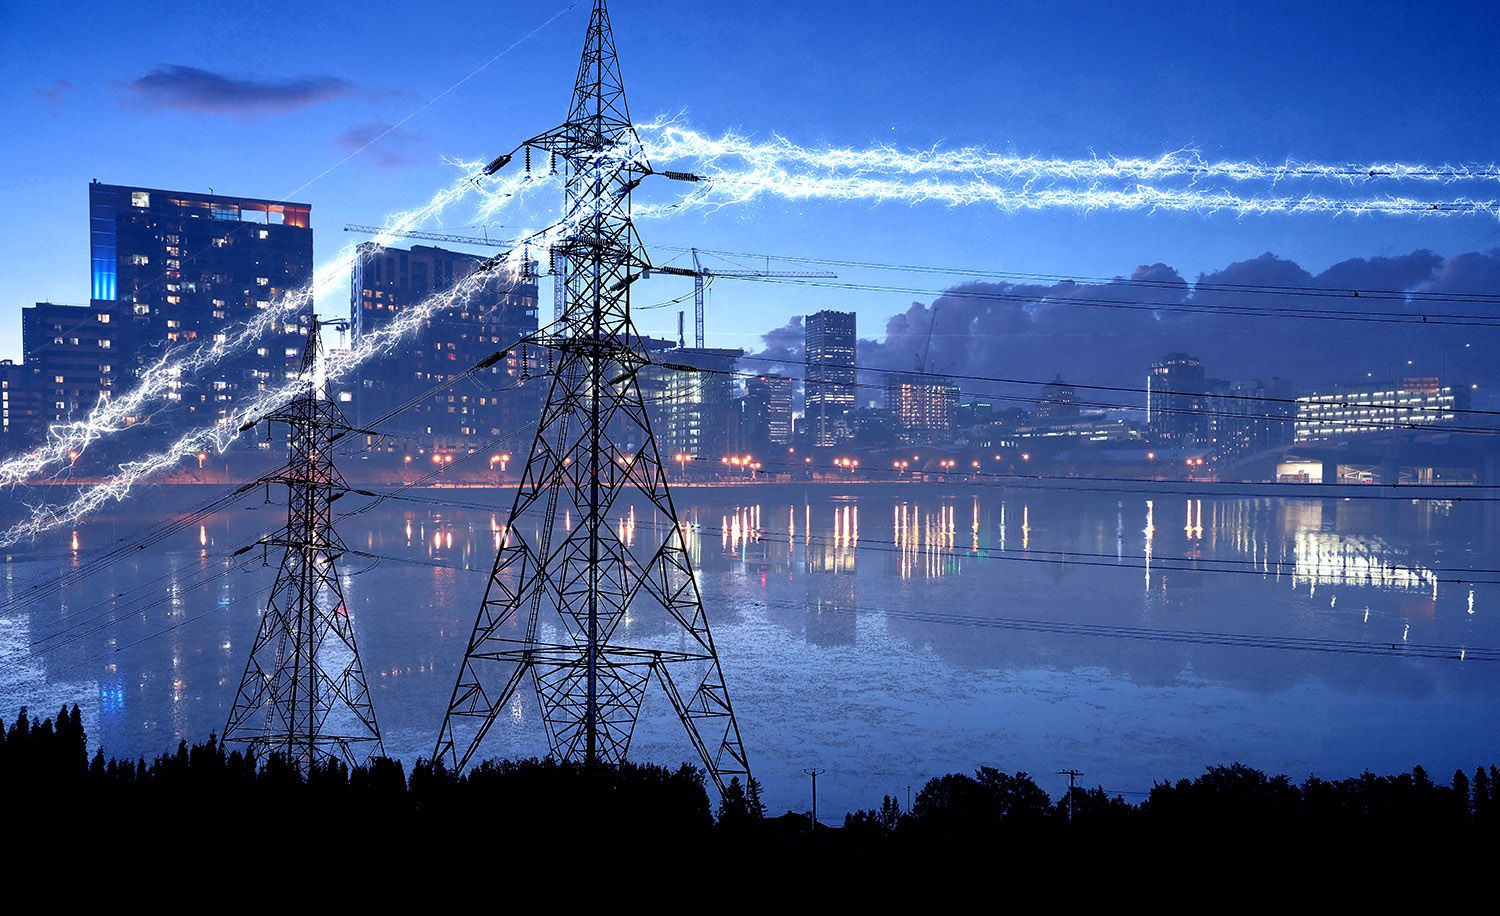 Urban Electrification in Blue - RF Stock Image